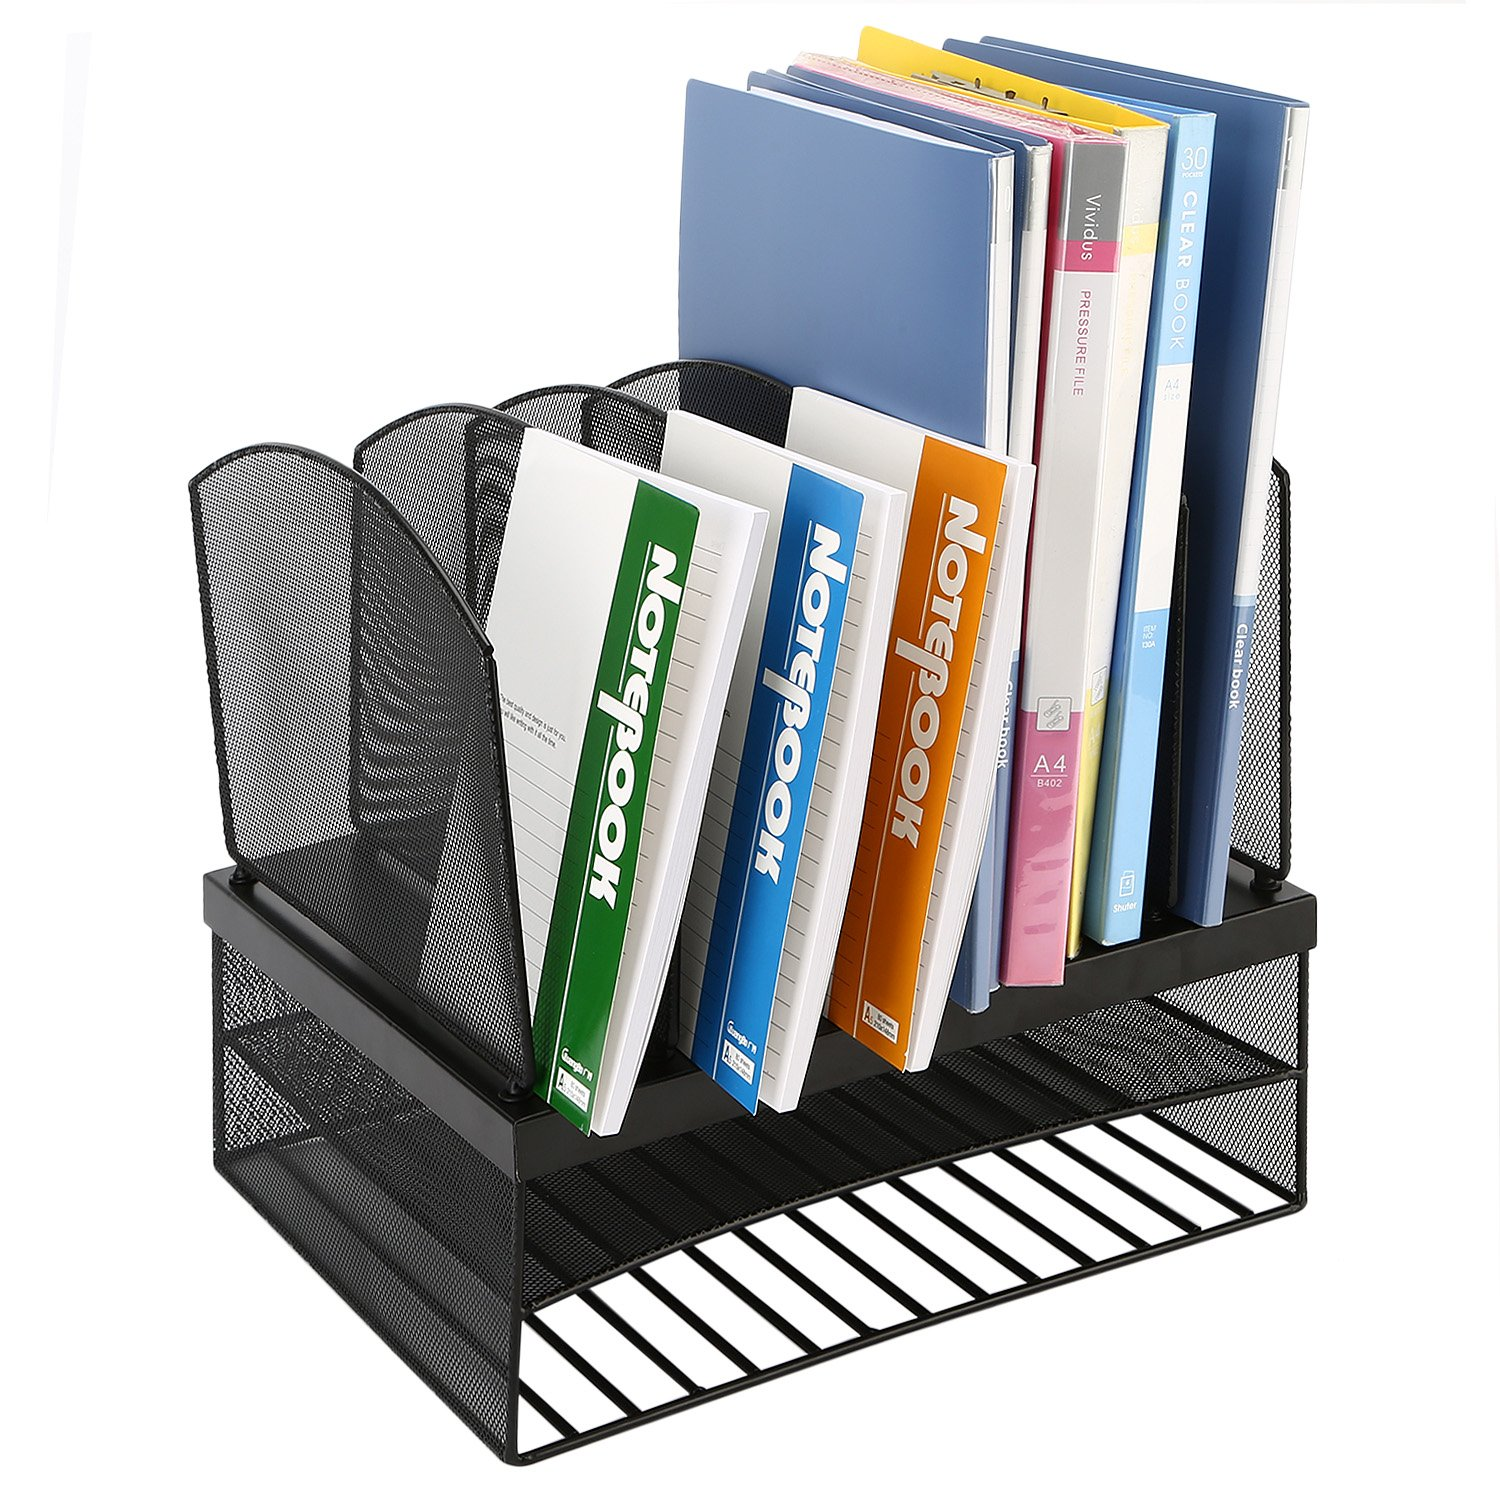 CRUODA Desktop Organizer File Rack with 6 Vertical/ 2 Horizontal Sections, Black Mesh Metal Office Desk Shelf, for Documents, Magazines, Notebooks